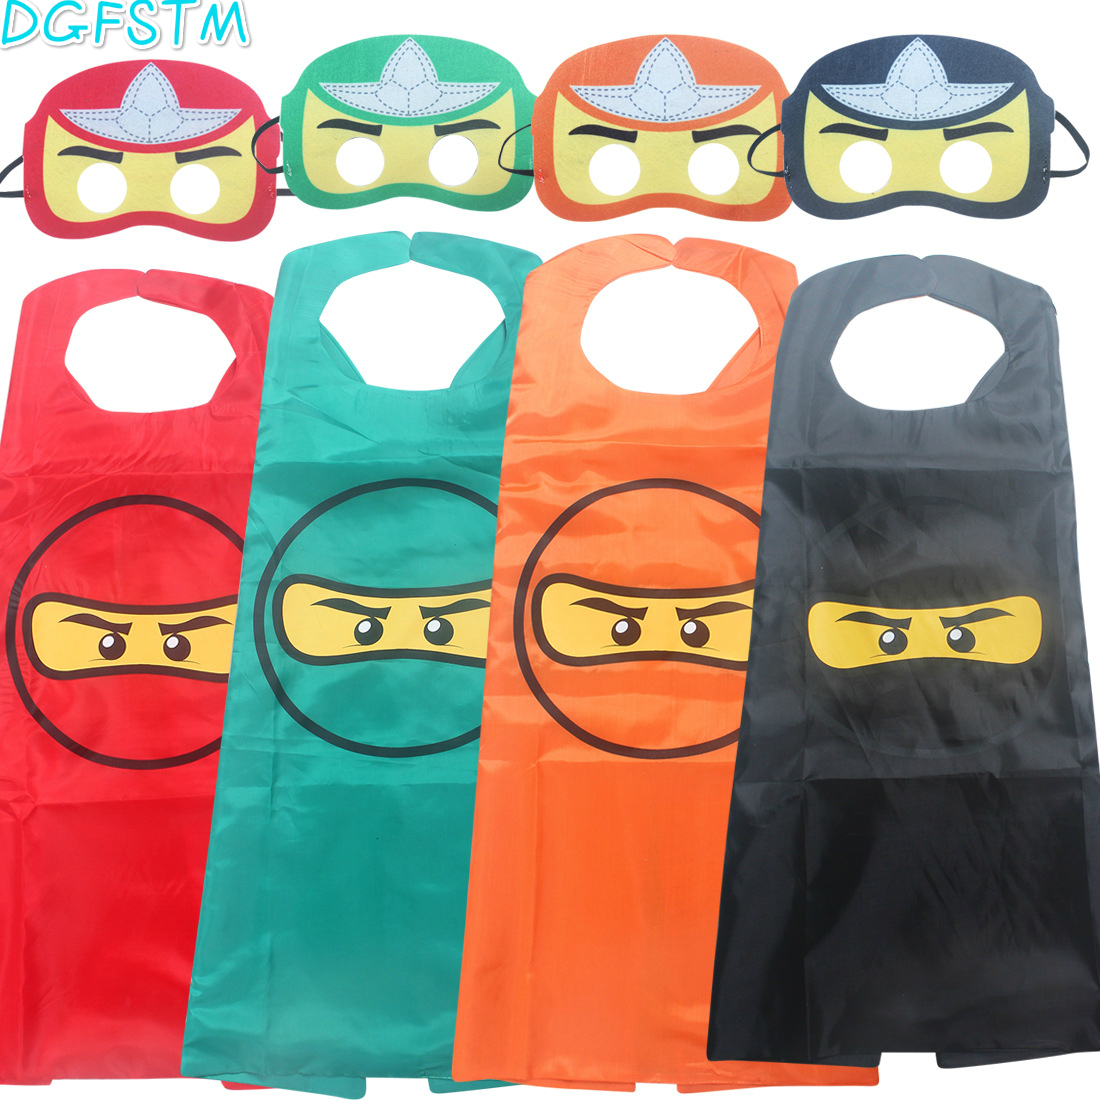 ninjago Super hero man spiderman batman capes with masks for kids birthday party supplies - party favor clothing set for 2-10Y 1cape 1mask cloak kids superhero capes boy children superman batman spiderman halloween baby costume cosplay super hero mask